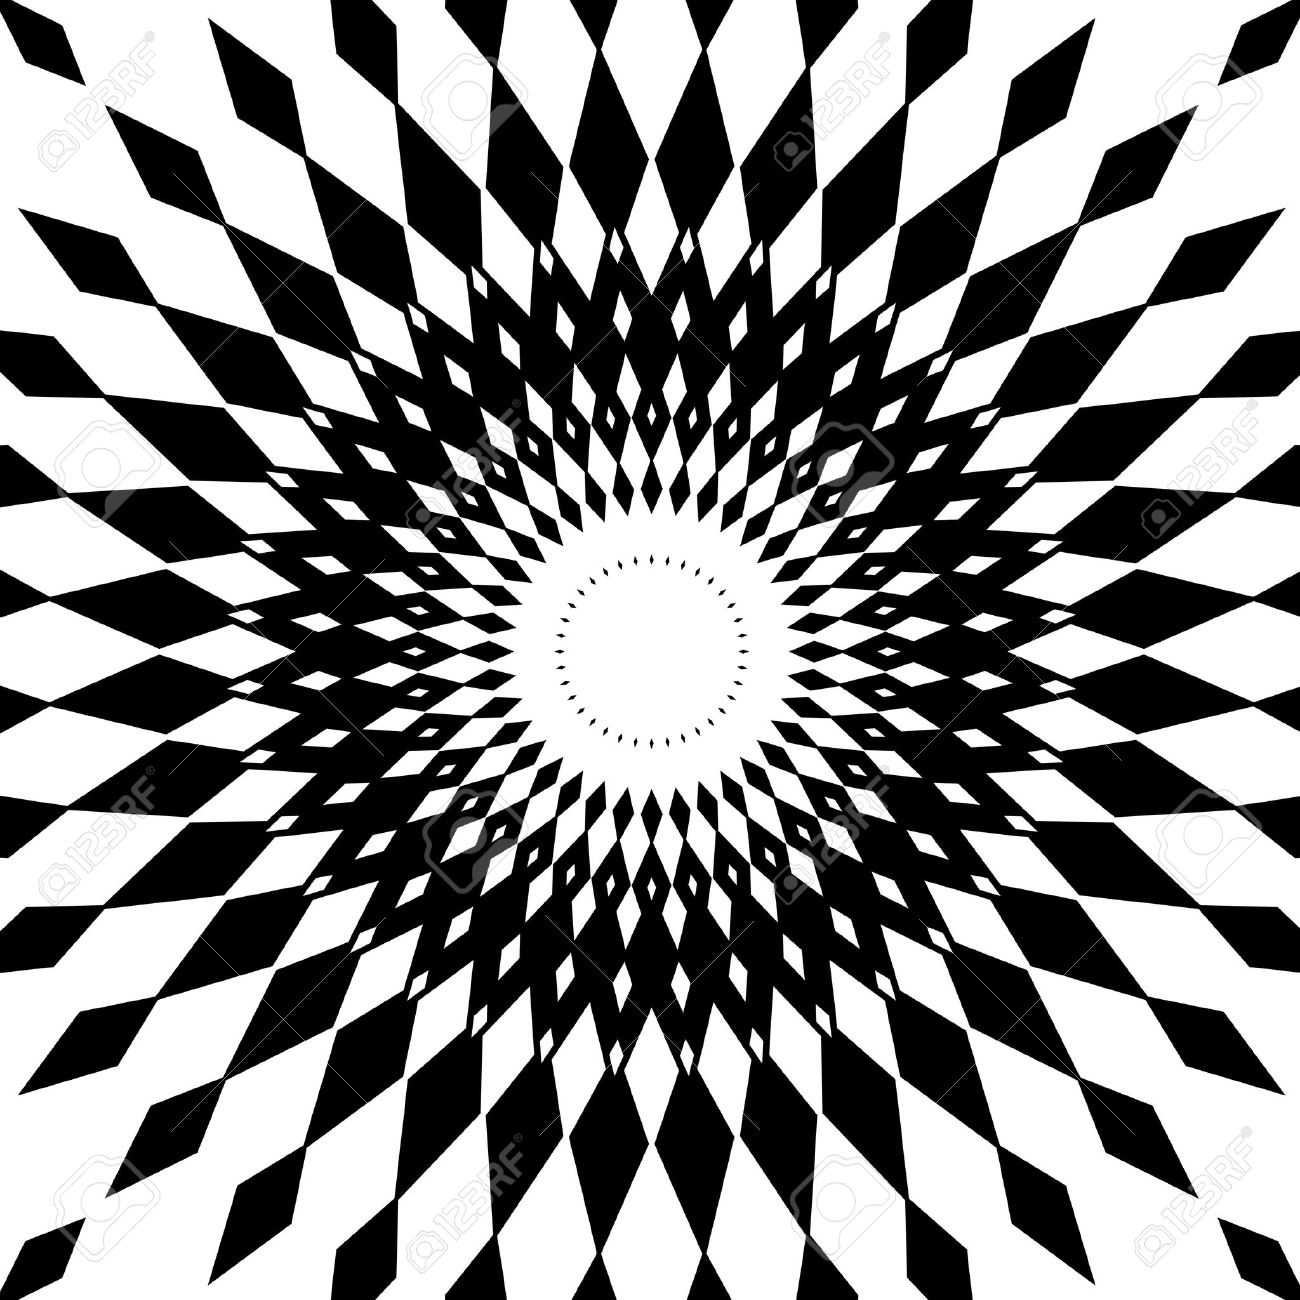 Black And White Design Extraordinary Black And White Design Royalty Free Cliparts Vectors And Stock Inspiration Design